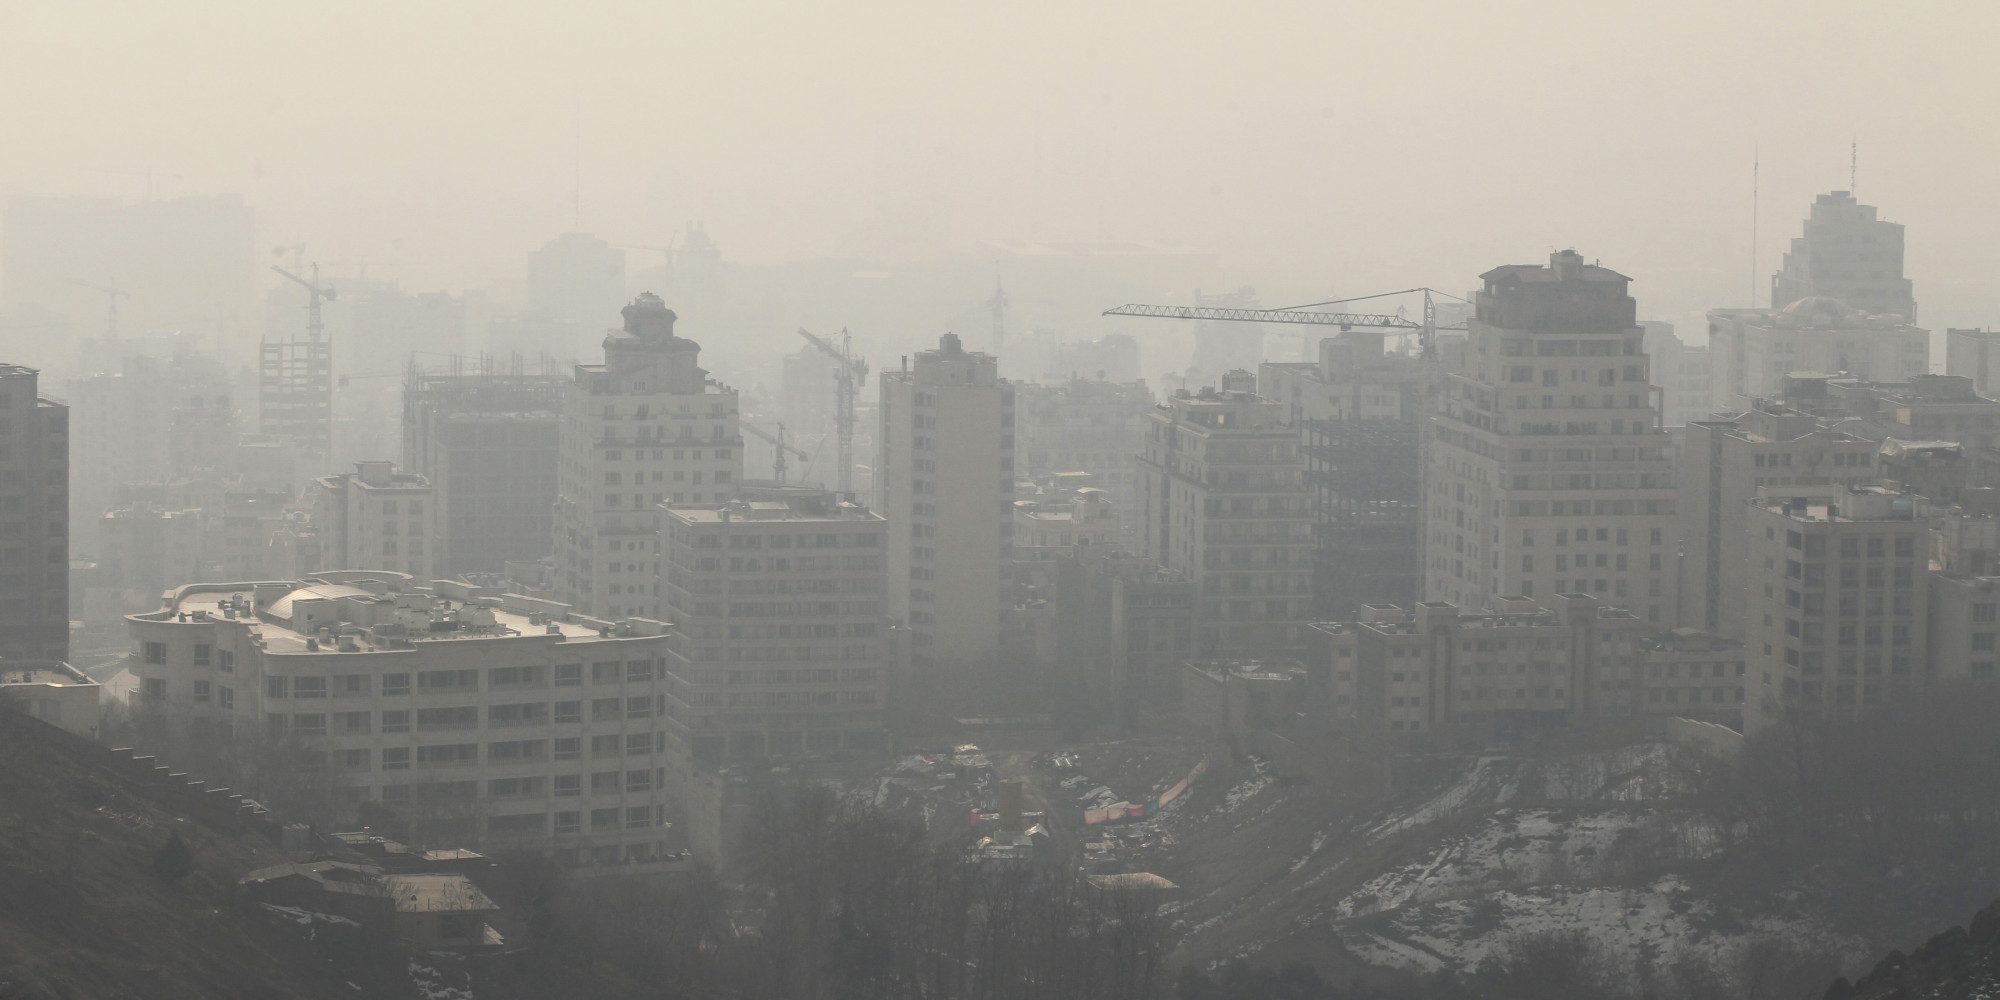 iran pollution Iran's reformists rack up political points while smog smothers tehran al-monitor | saeid jafari: iran's air pollution crisis, which claimed more than 4,800 lives in 2016, has become yet.